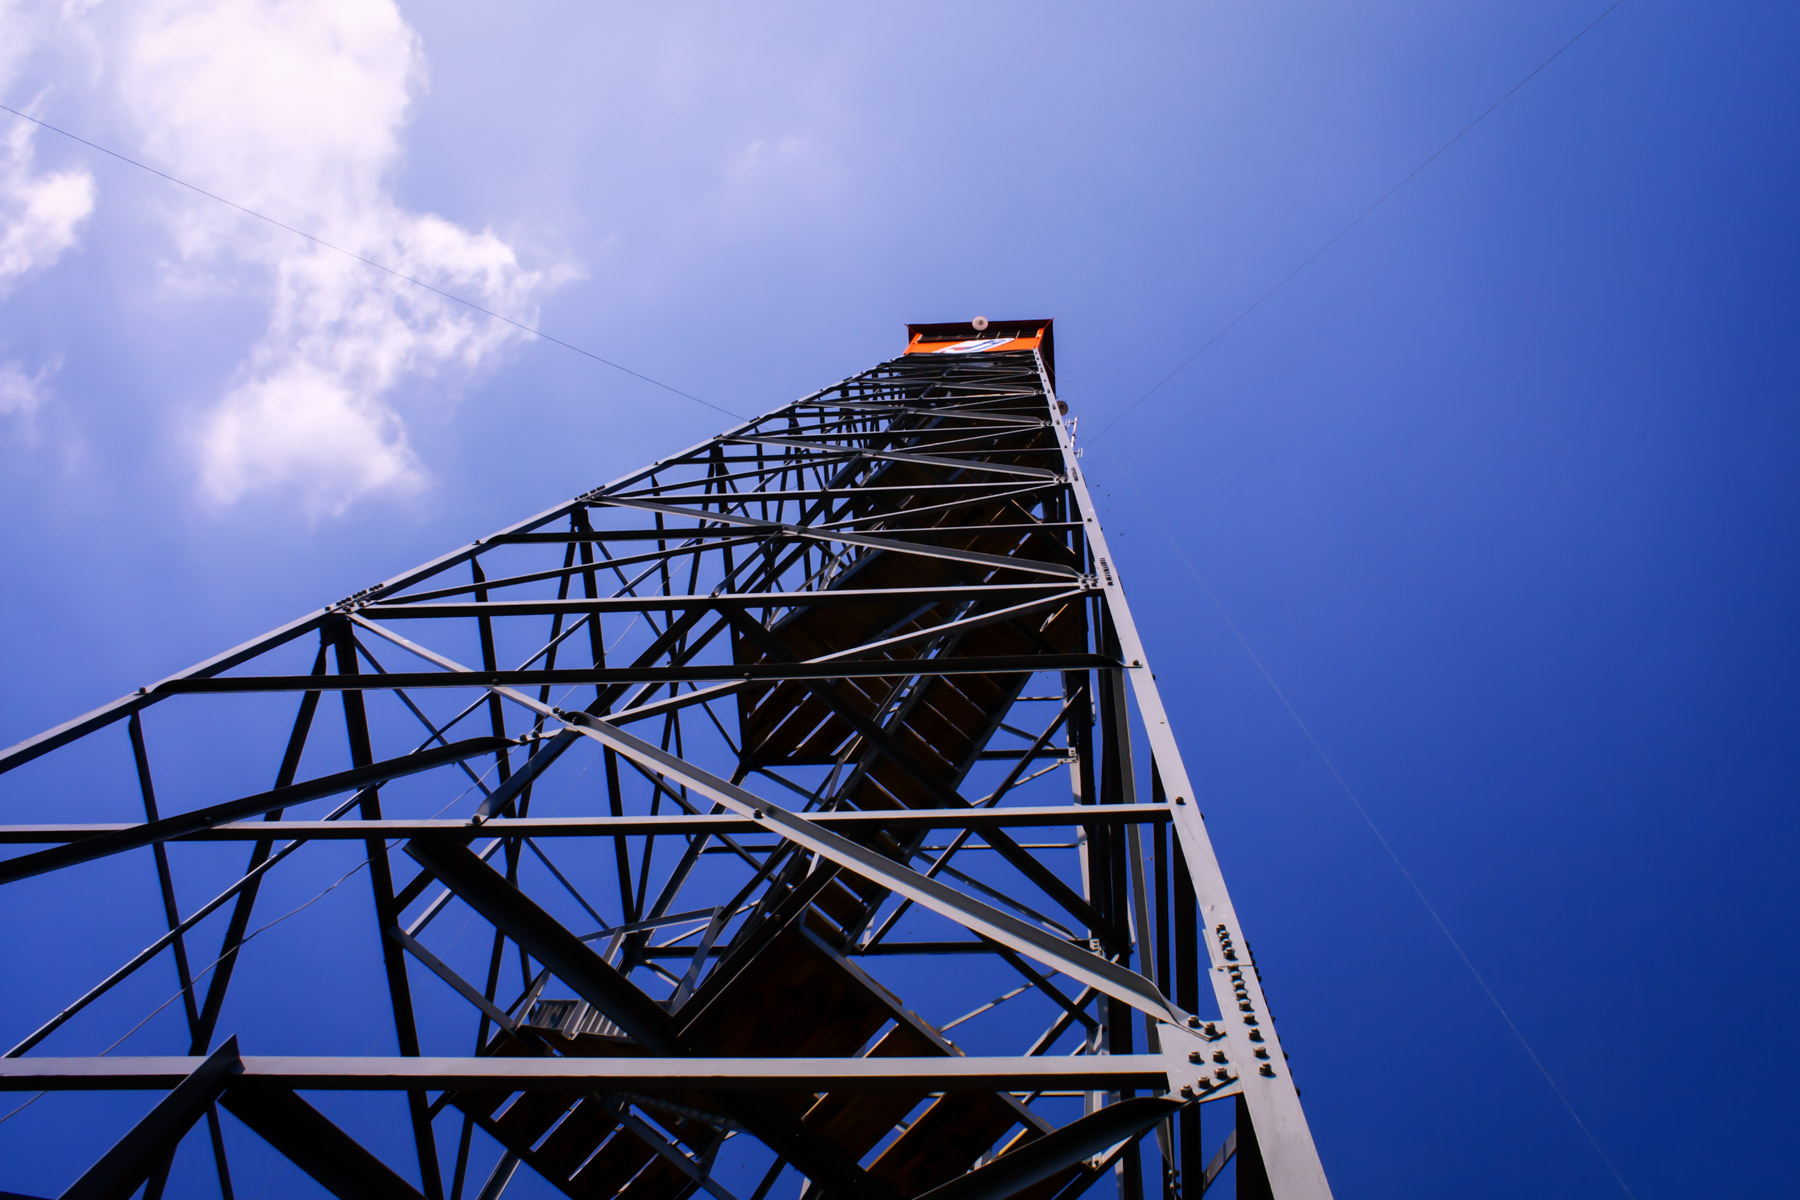 A fire watchtower outside of Jacksonville, Texas.